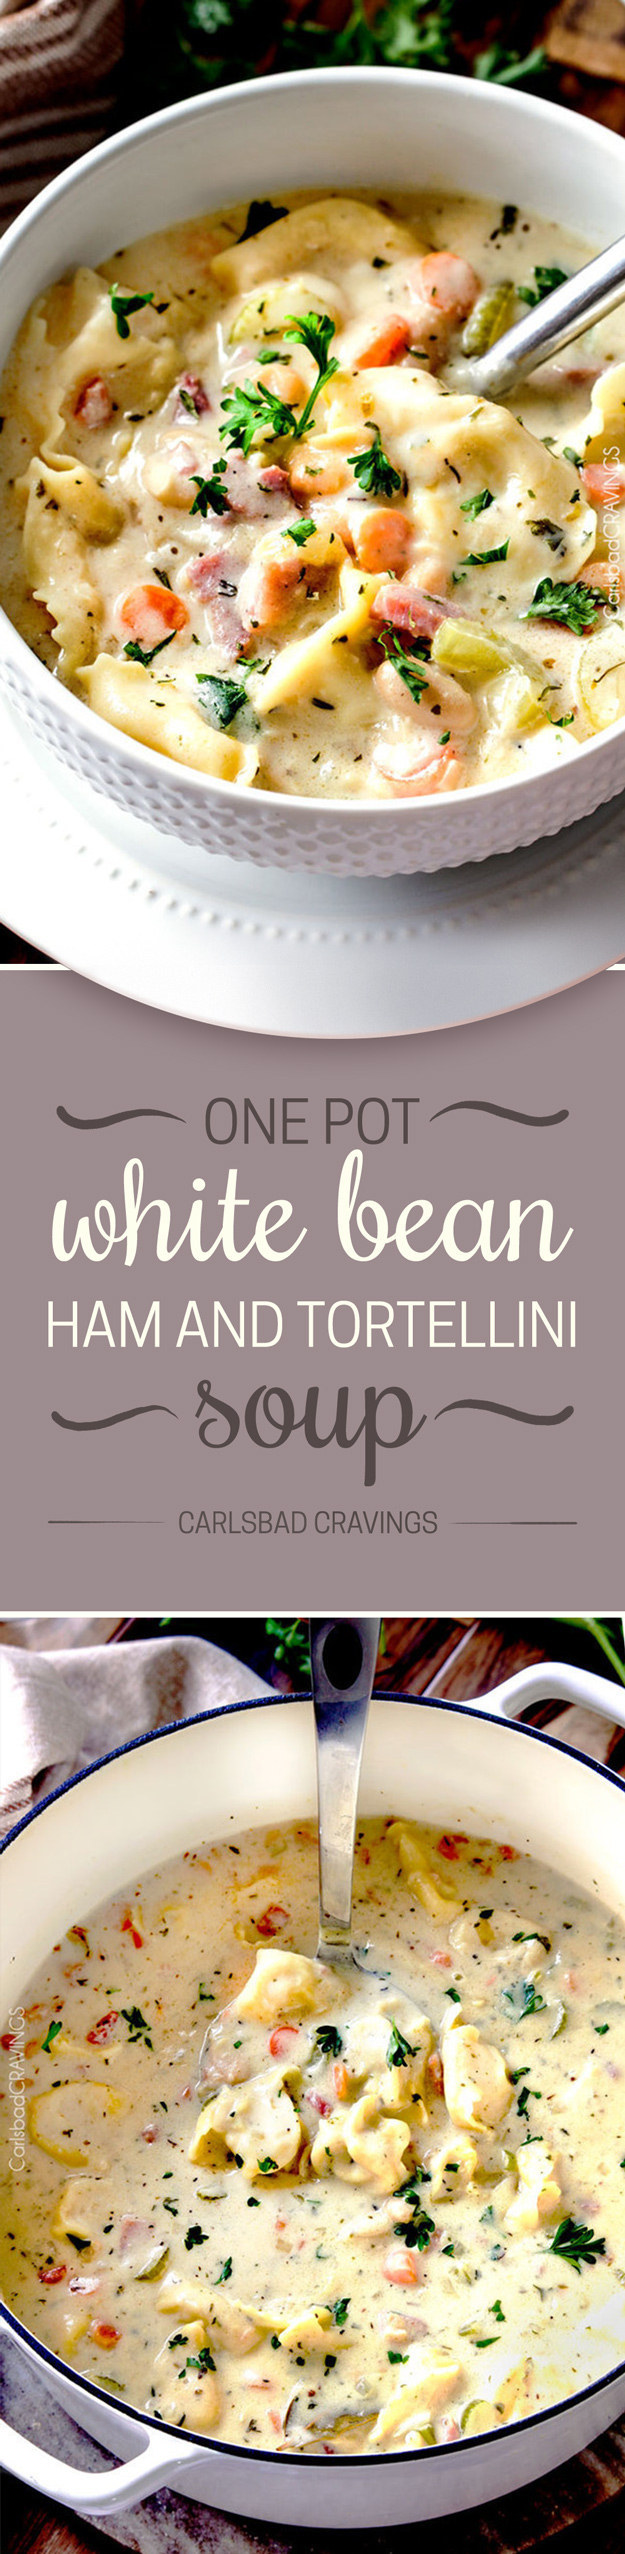 One Pot White Bean, Ham, and Tortellini Soup